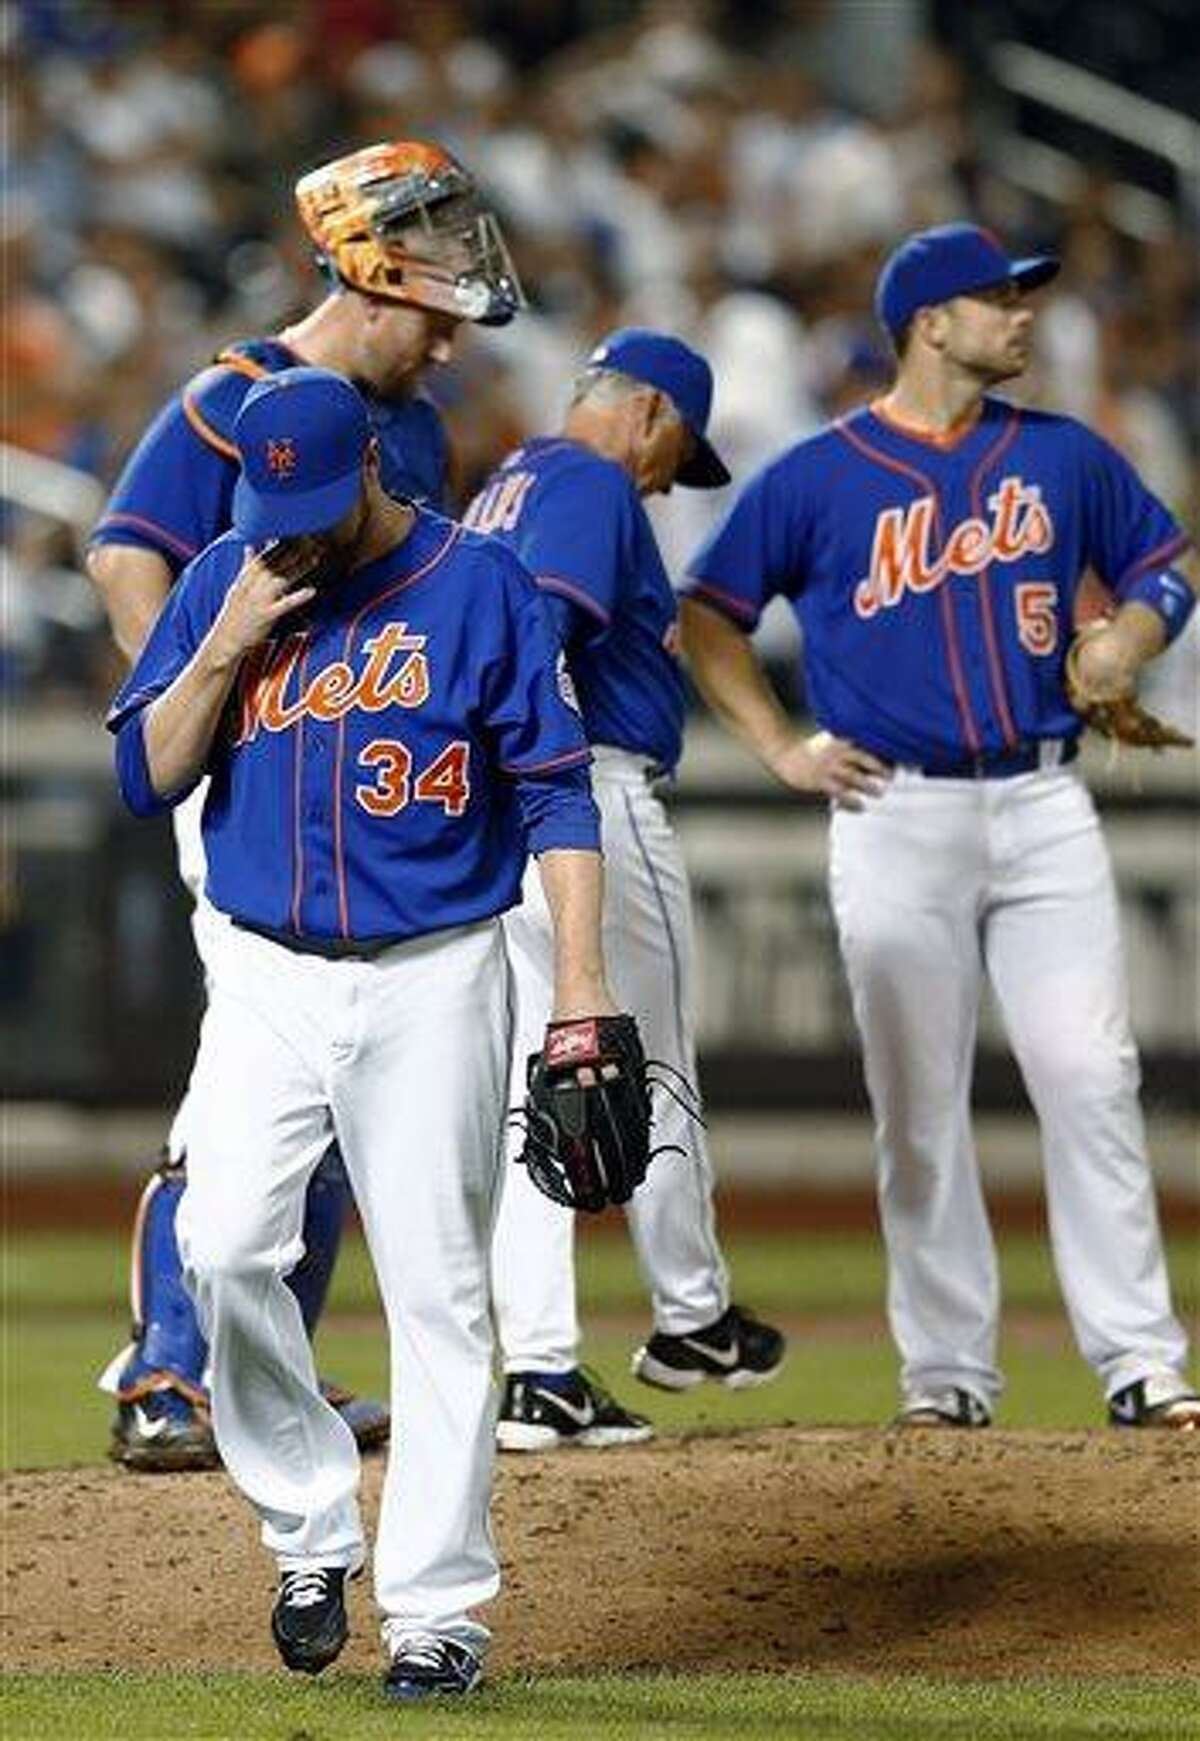 New York Mets relief pitcher Brandon Lyon (34) walks off the mound after being pulled from the baseball game after he gave up a three-run double in the eighth inning in a baseball game against the Washington Nationals in New York, Friday, June 28, 2013. (AP Photo/Paul J. Bereswill)